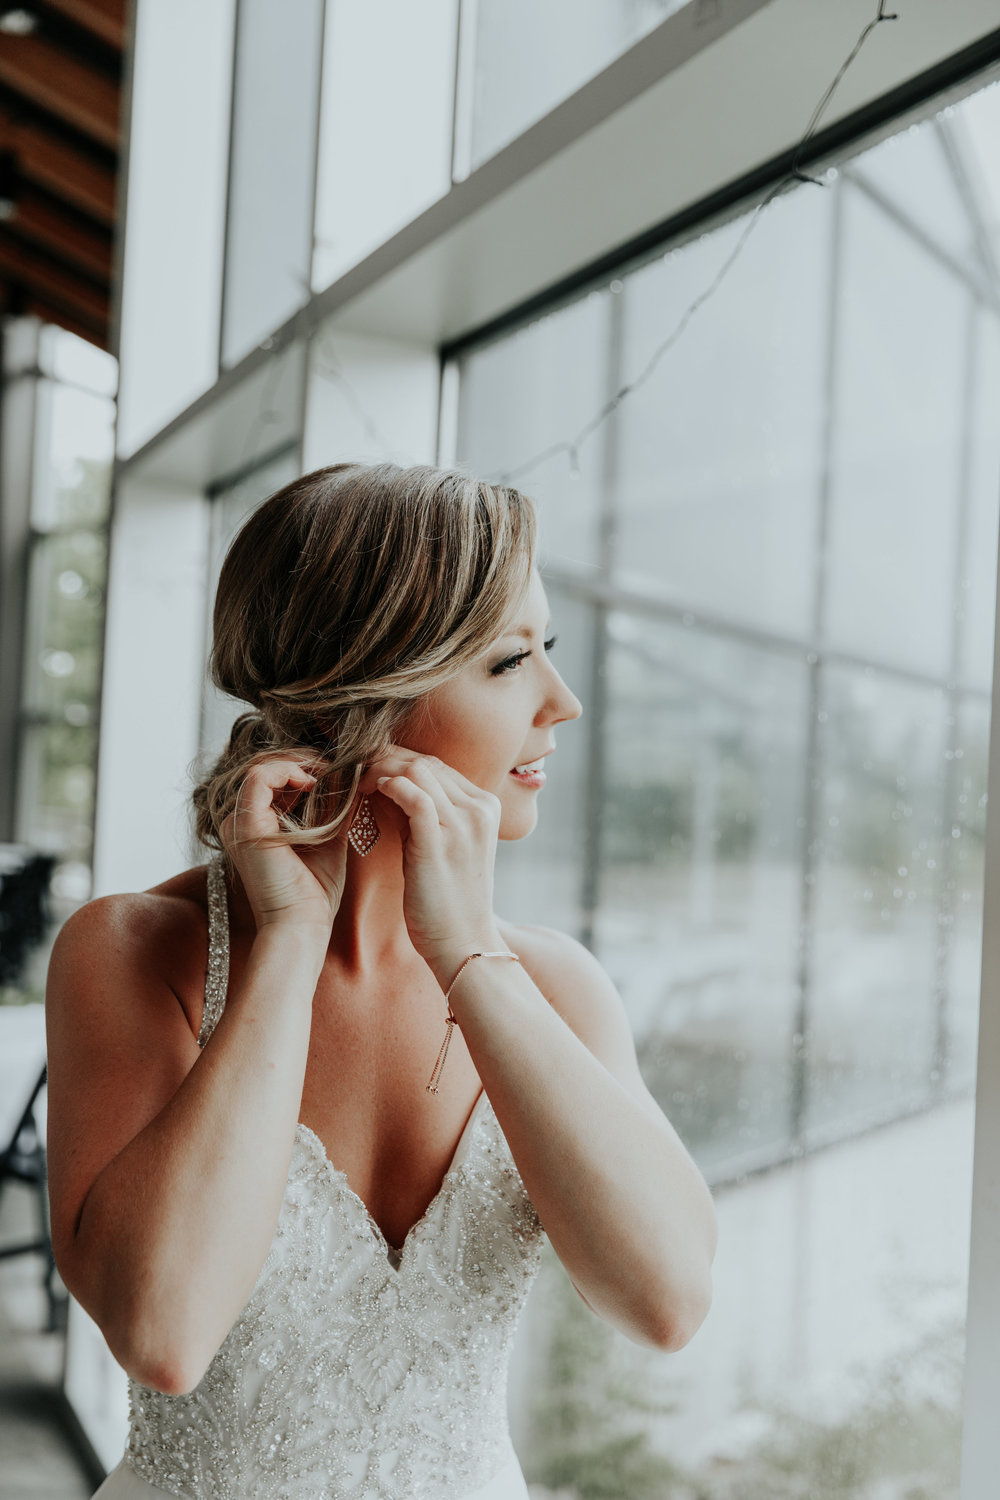 Bride getting ready on wedding day | Be Images